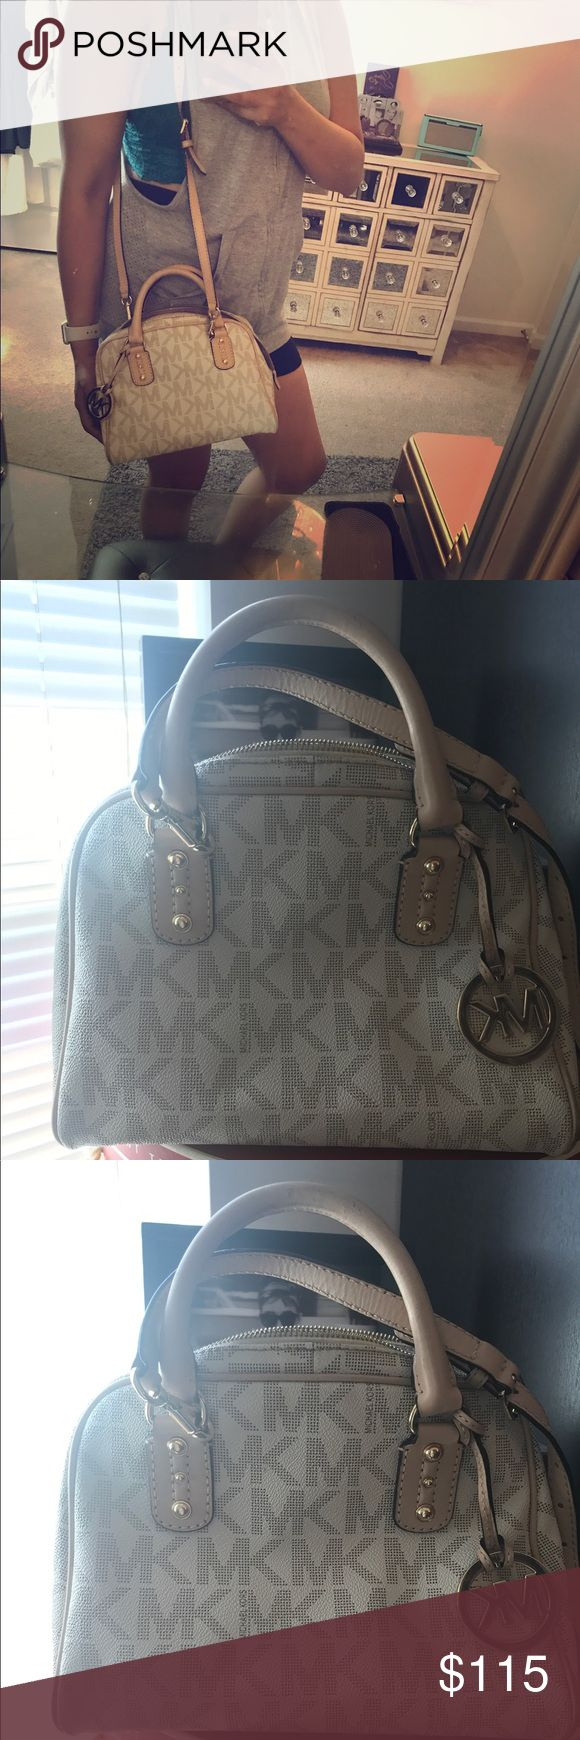 Michael Kors Handbag This is a beautiful off white  Michael Kors handbag. Perfect for a night out or casual weekend. When I purchased this bag I fell in love with it because it was so versatile. Small enough to carry anywhere but big enough to fit all my essentials. Hand bag was utilized but taken care of. Michael Kors Bags Crossbody Bags